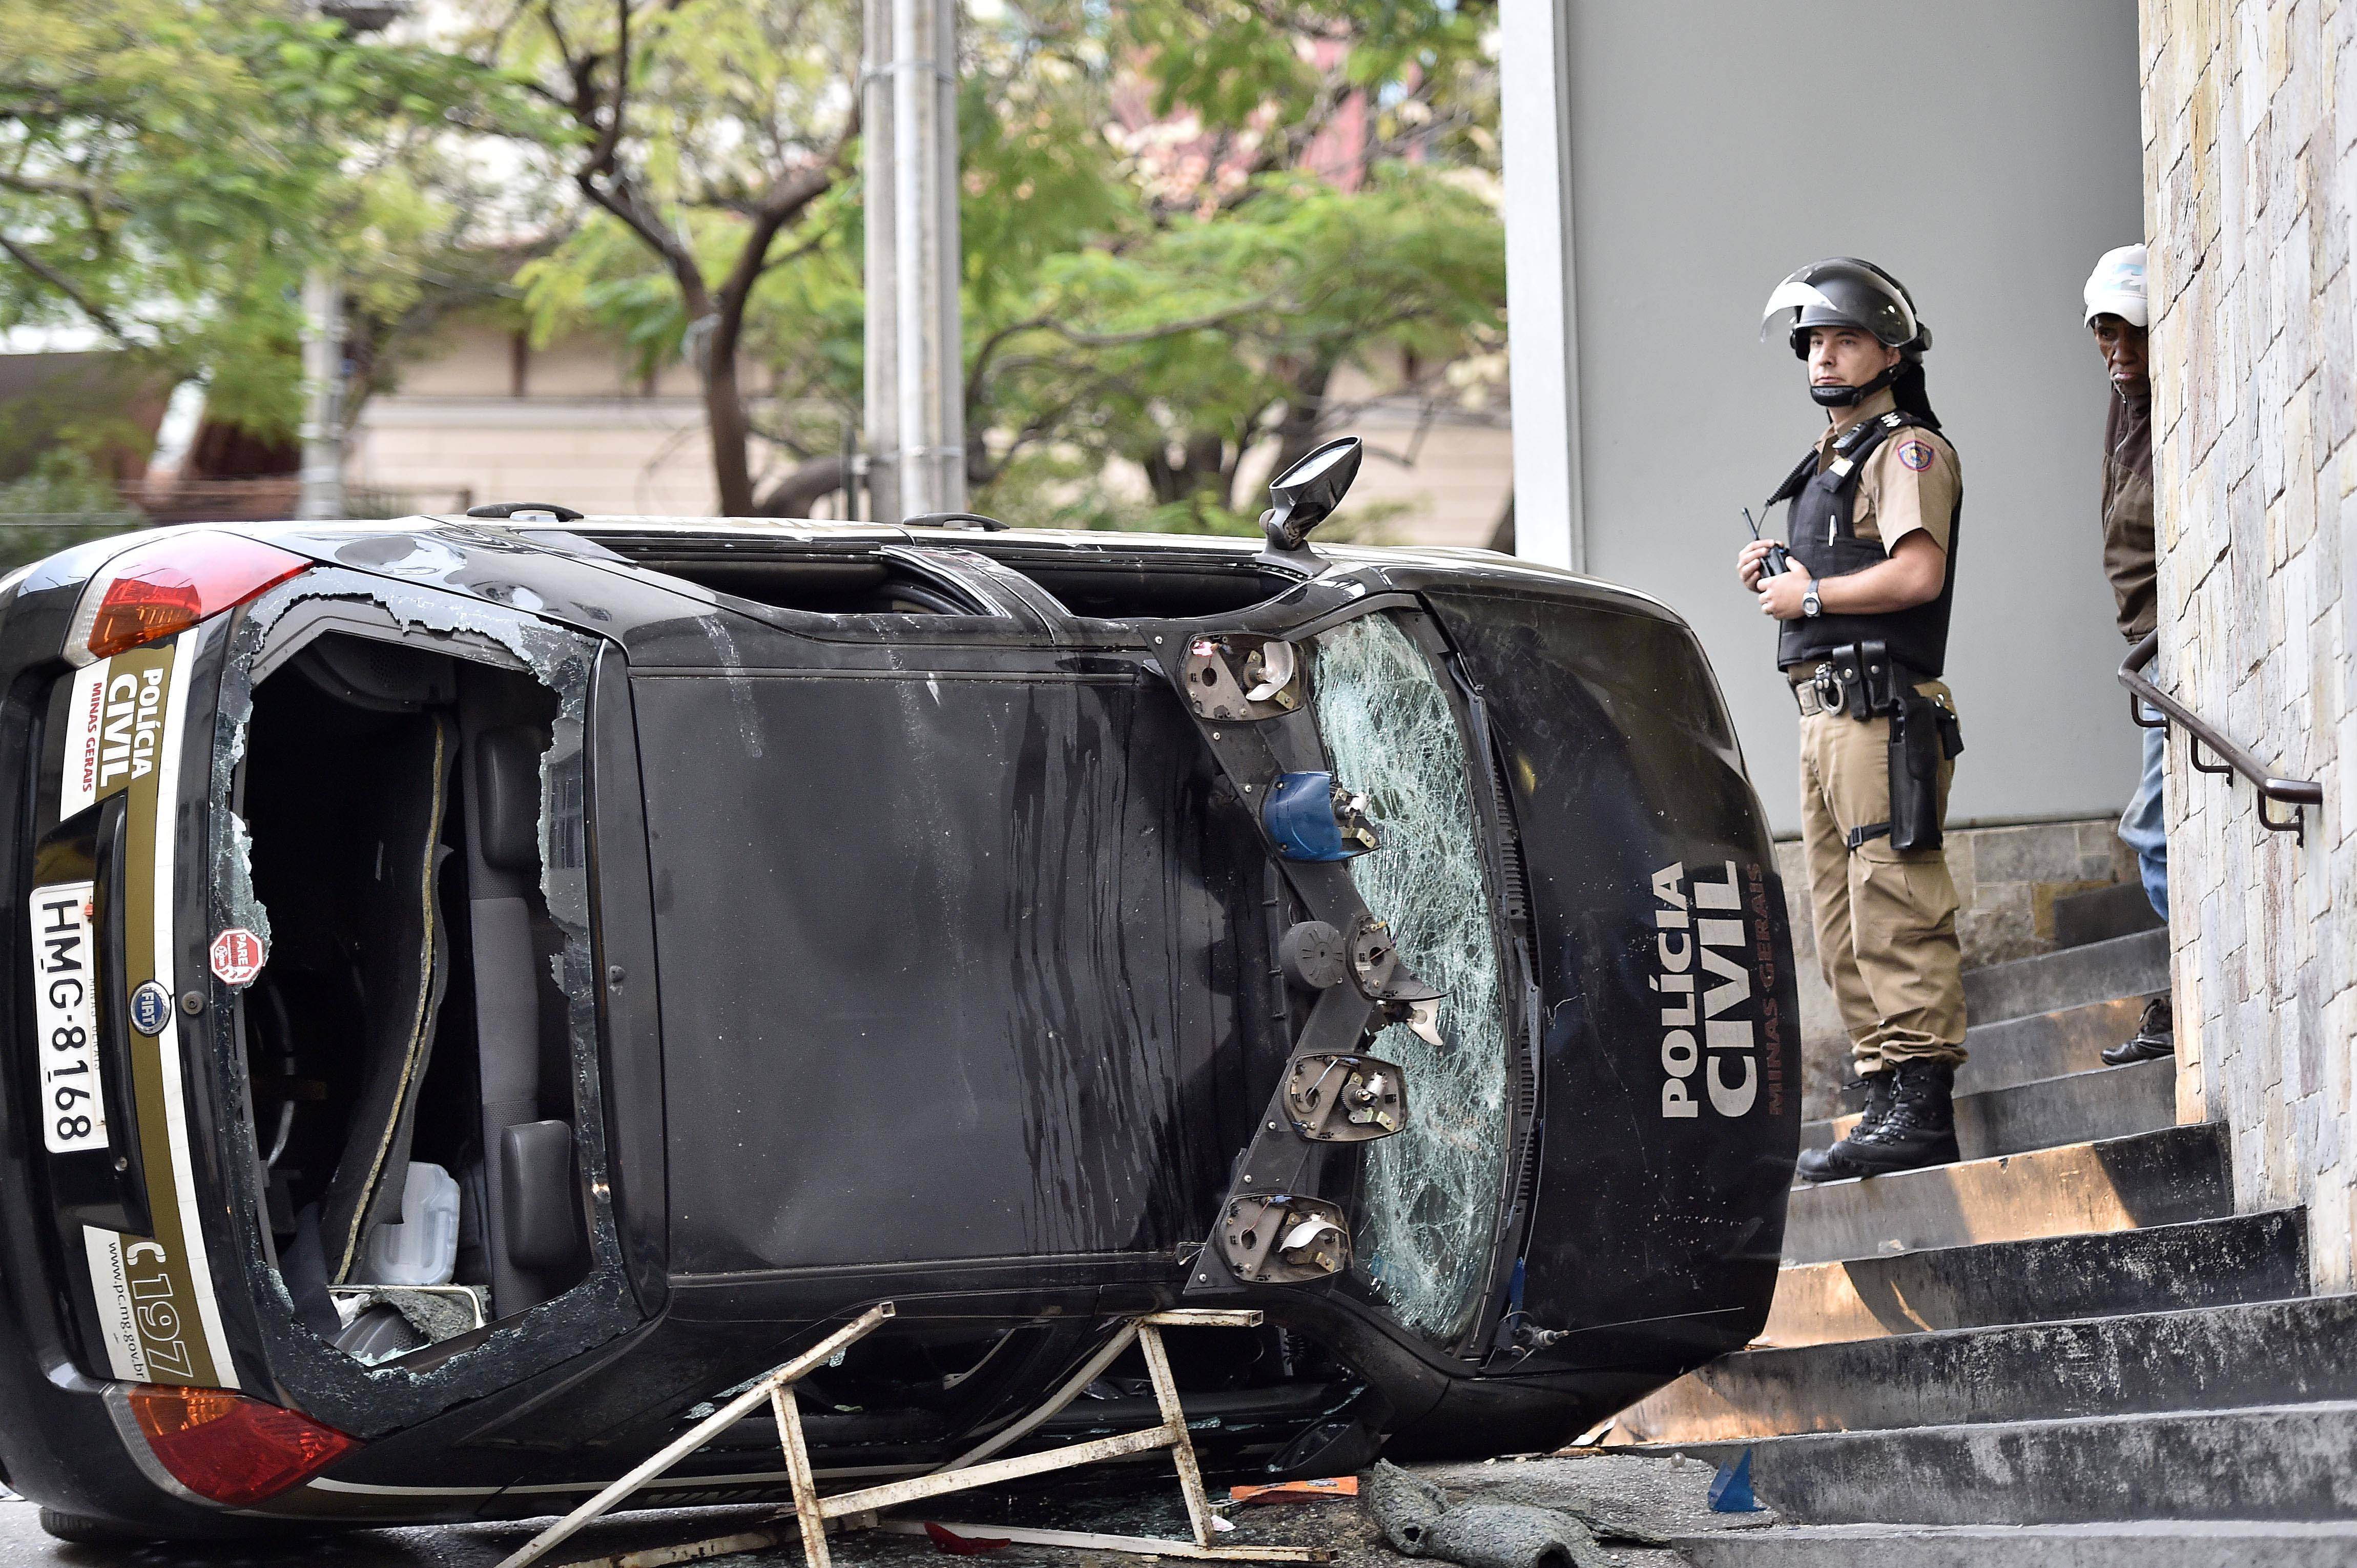 A police officer stands next to a destroyed police car during a violent demonstration at the 2014 soccer World Cup in the center of Belo Horizonte , Brazil, Thursday, June 12, 2014.